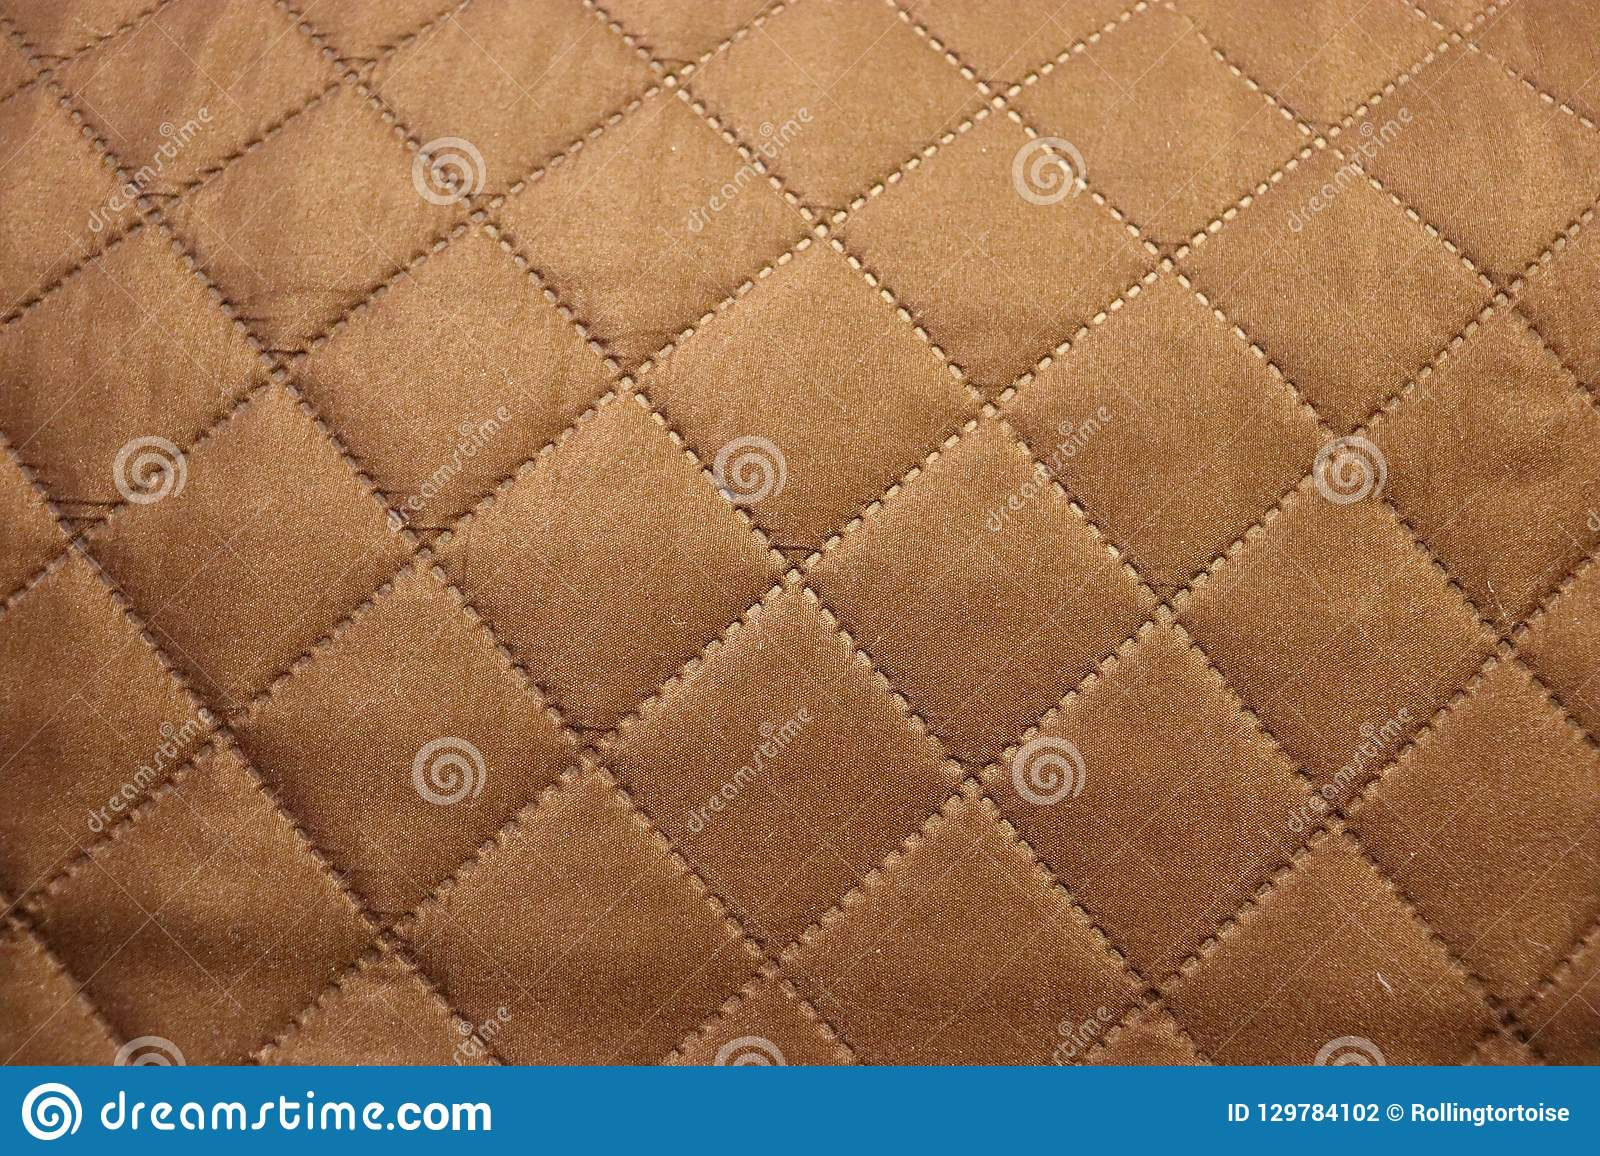 Quilted Fabric Quilted Fabric Texture Perfect For Videogames Web Design